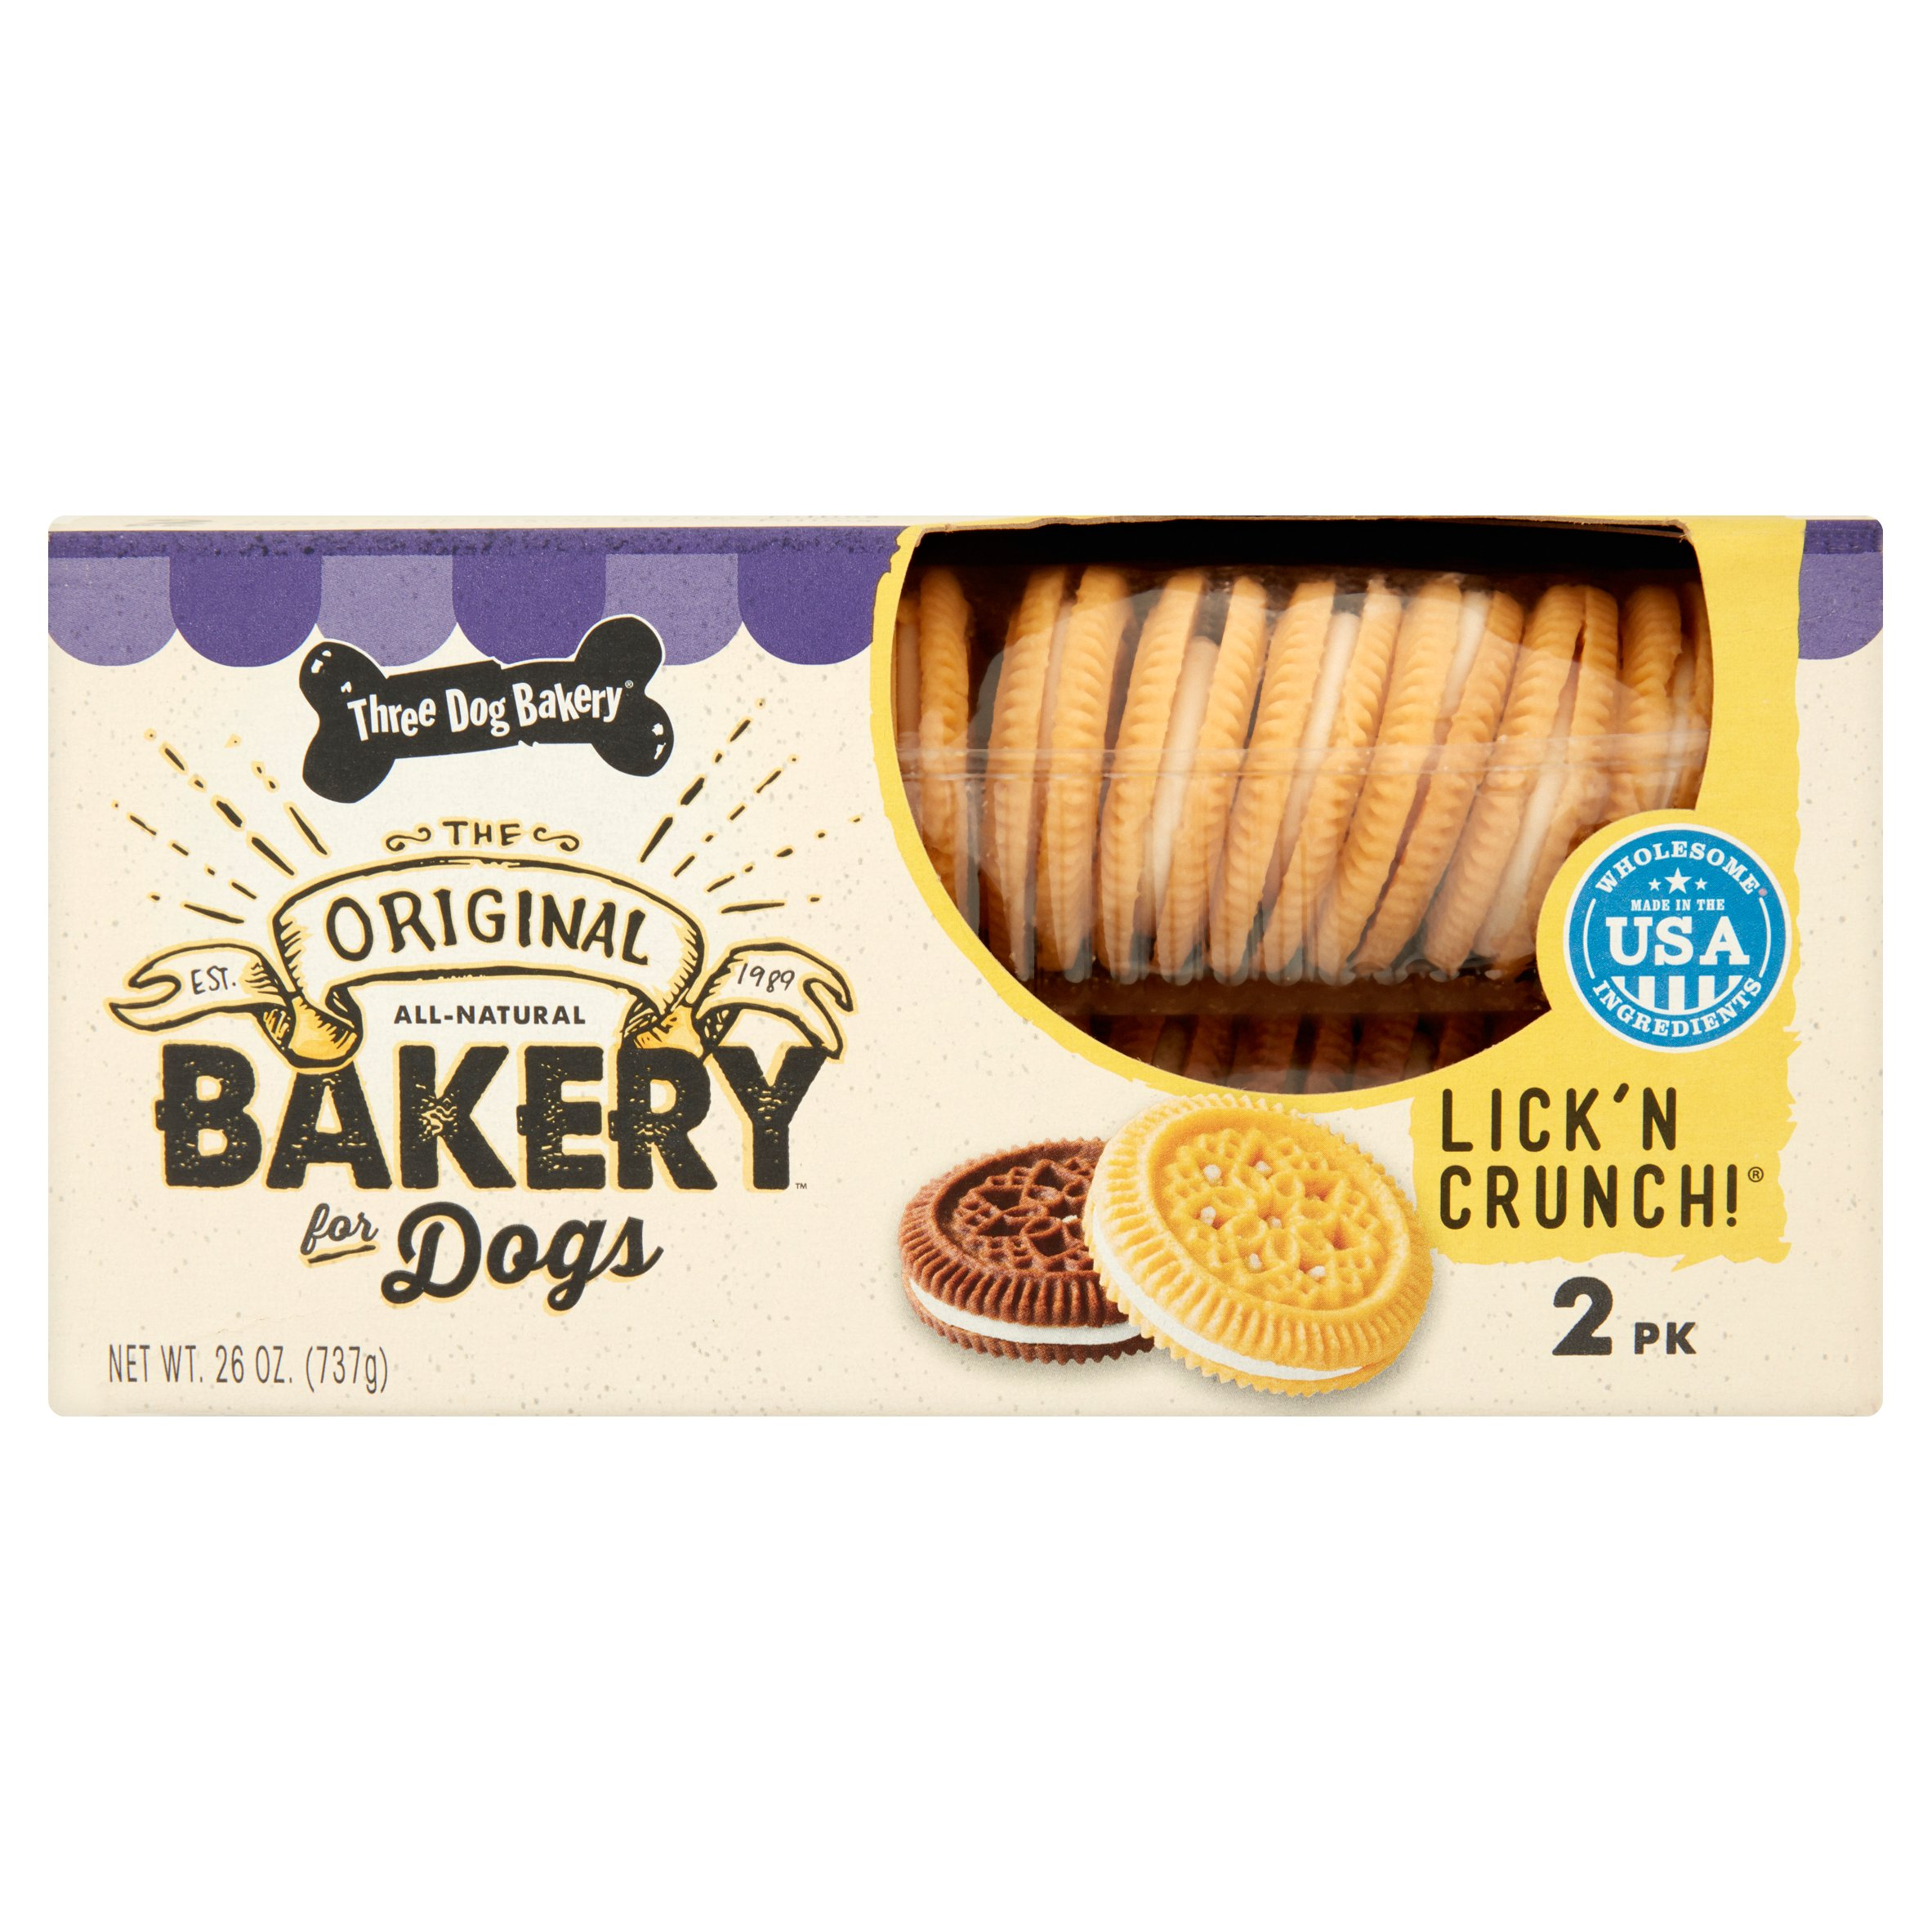 Three Dog Bakery The Original Lick'n Crunch! Bakery for Dogs, 2 pack, 26 oz